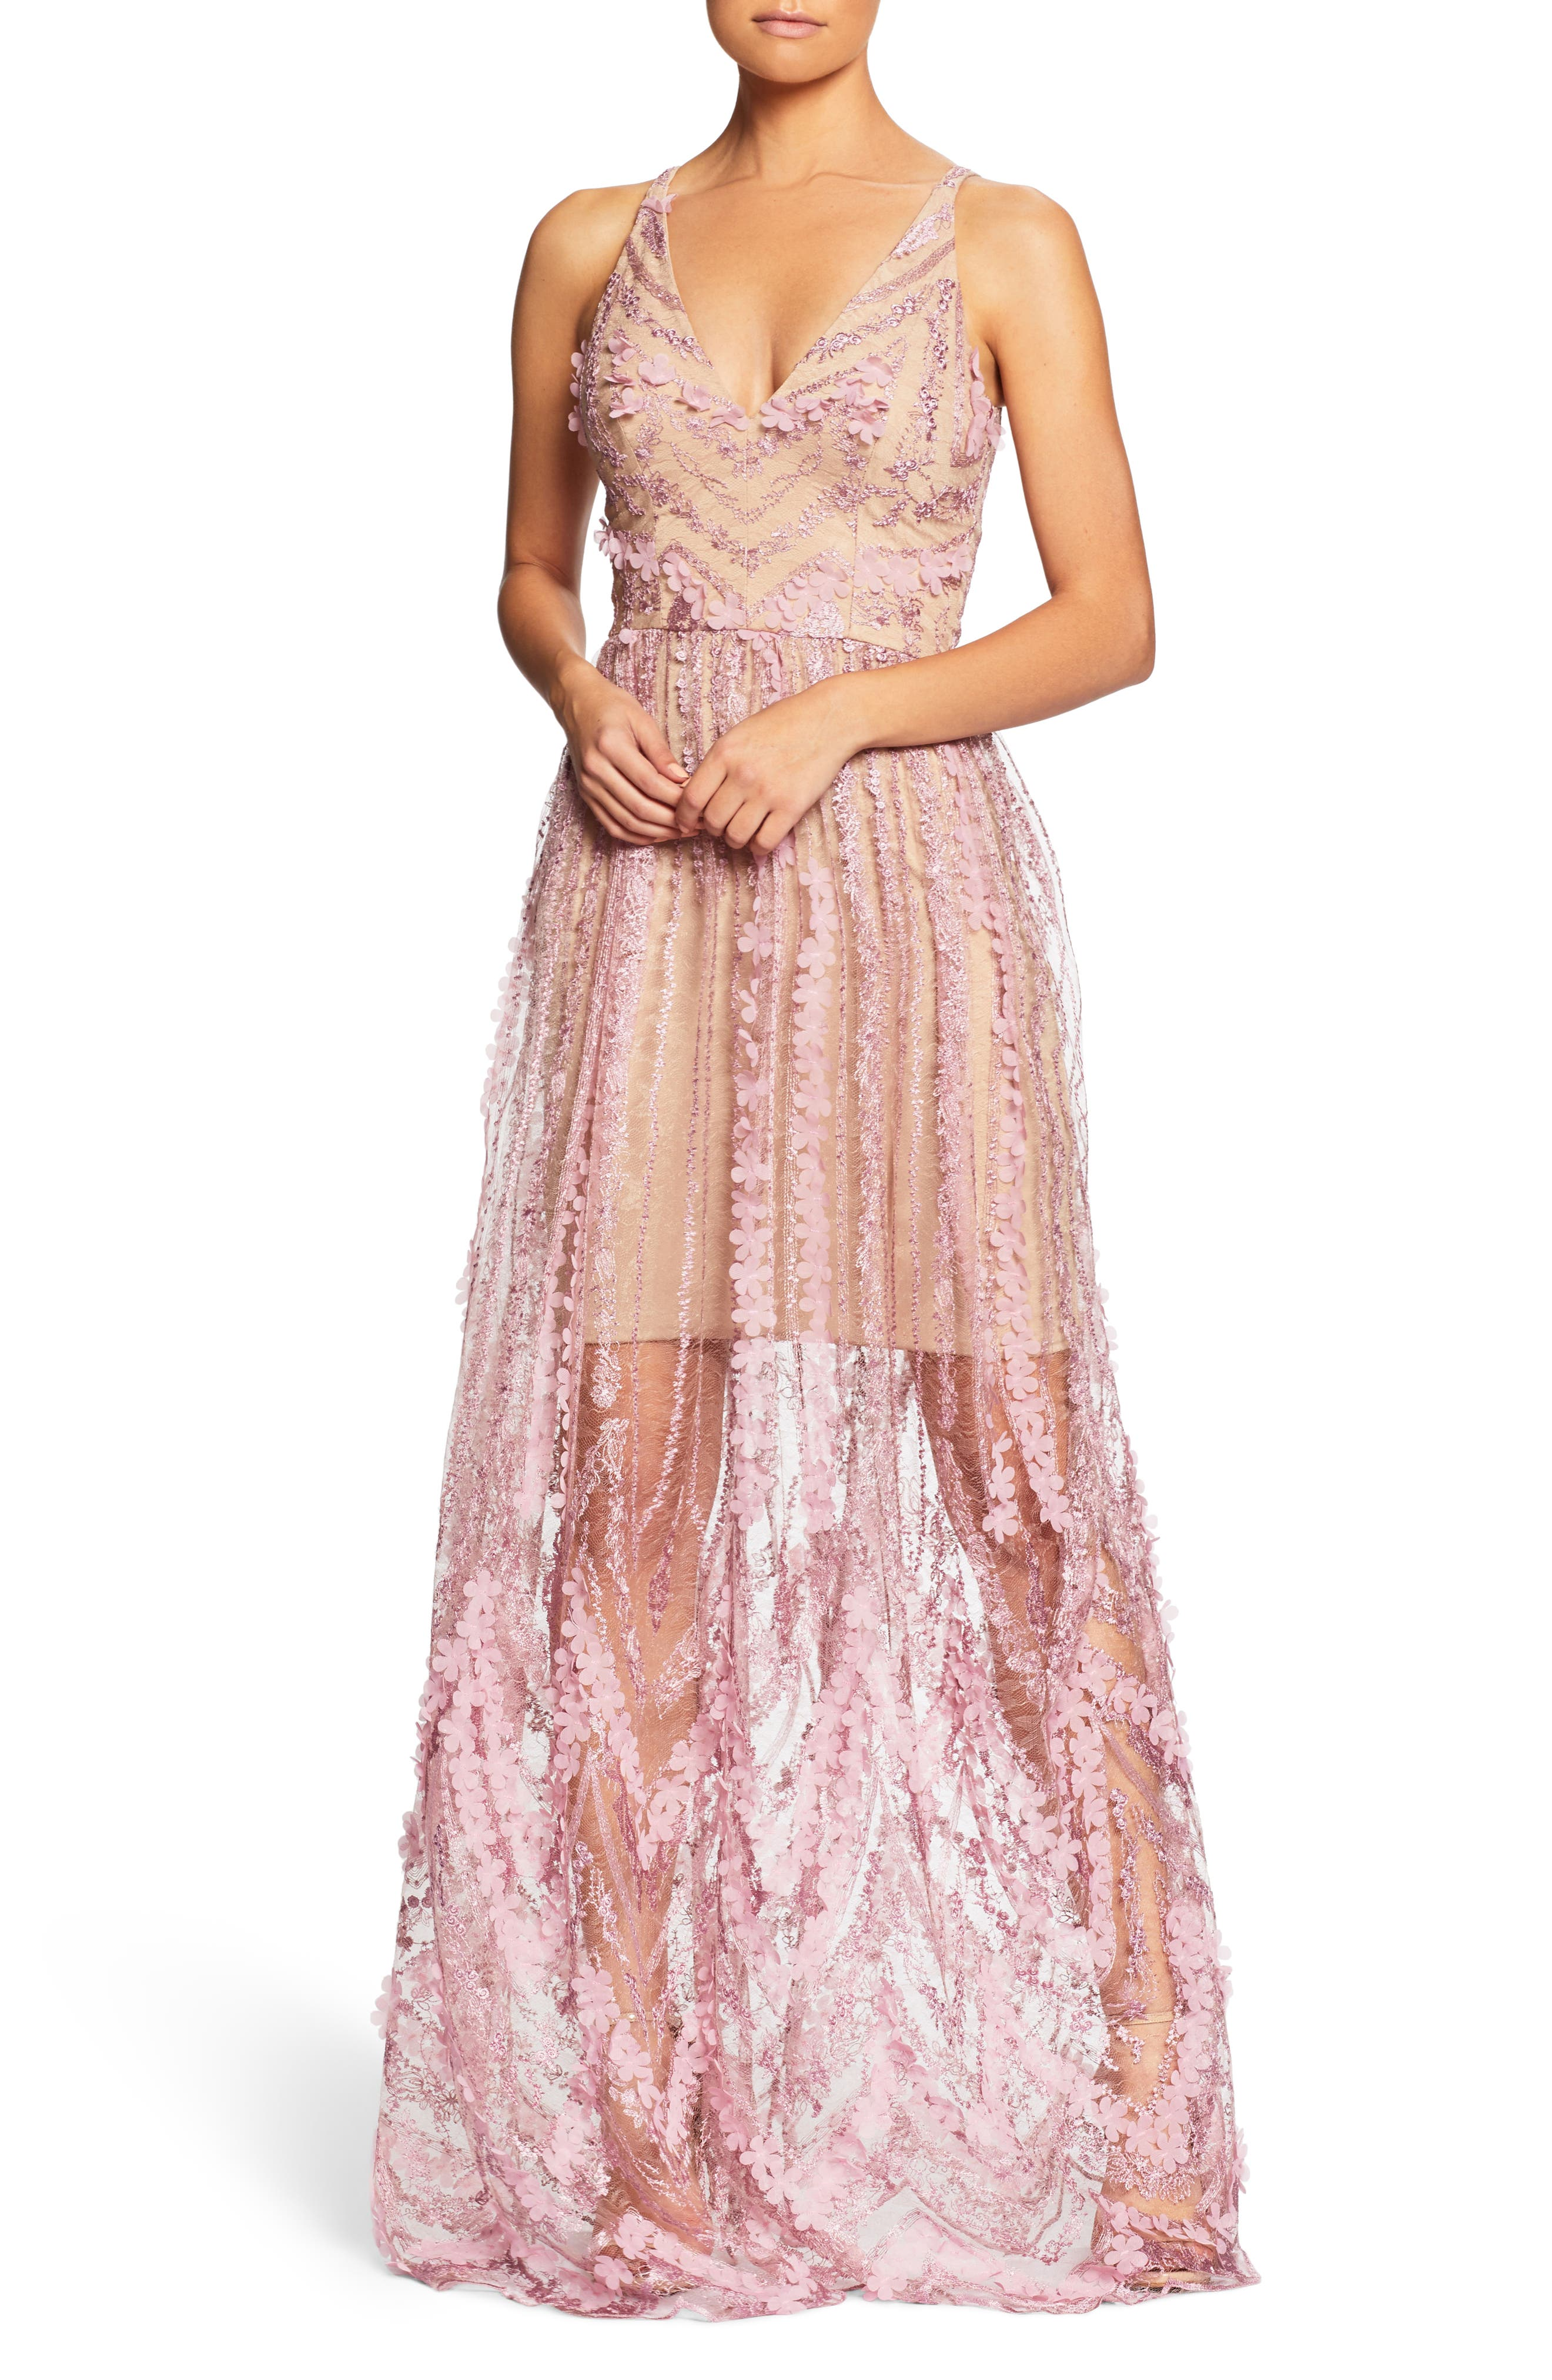 Chelsea Lace A-Line Gown,                         Main,                         color, Lilac/ Nude